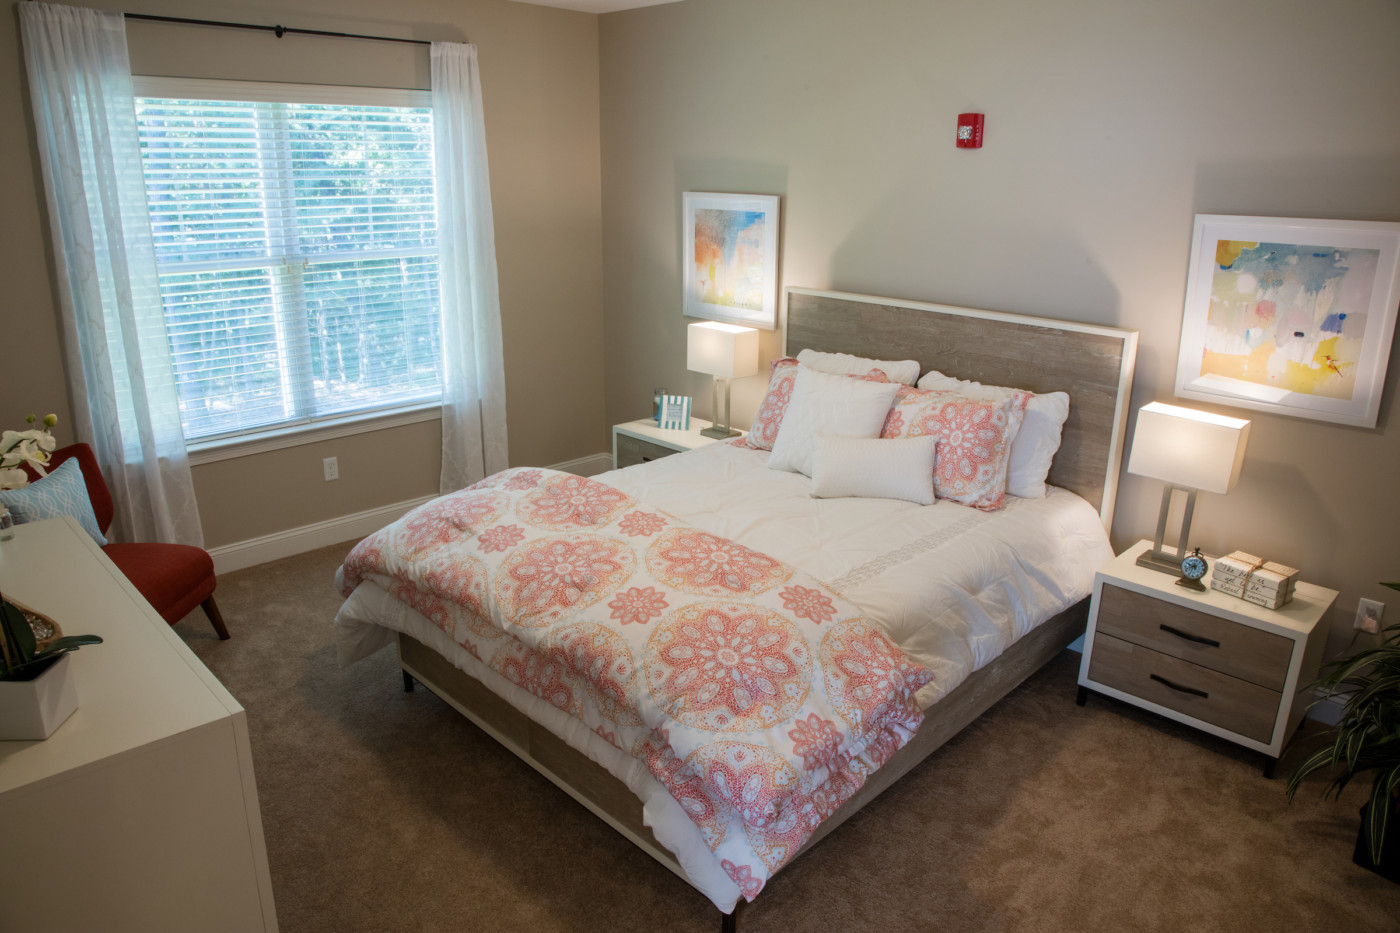 bedroom with coral bedding and light wood side tables